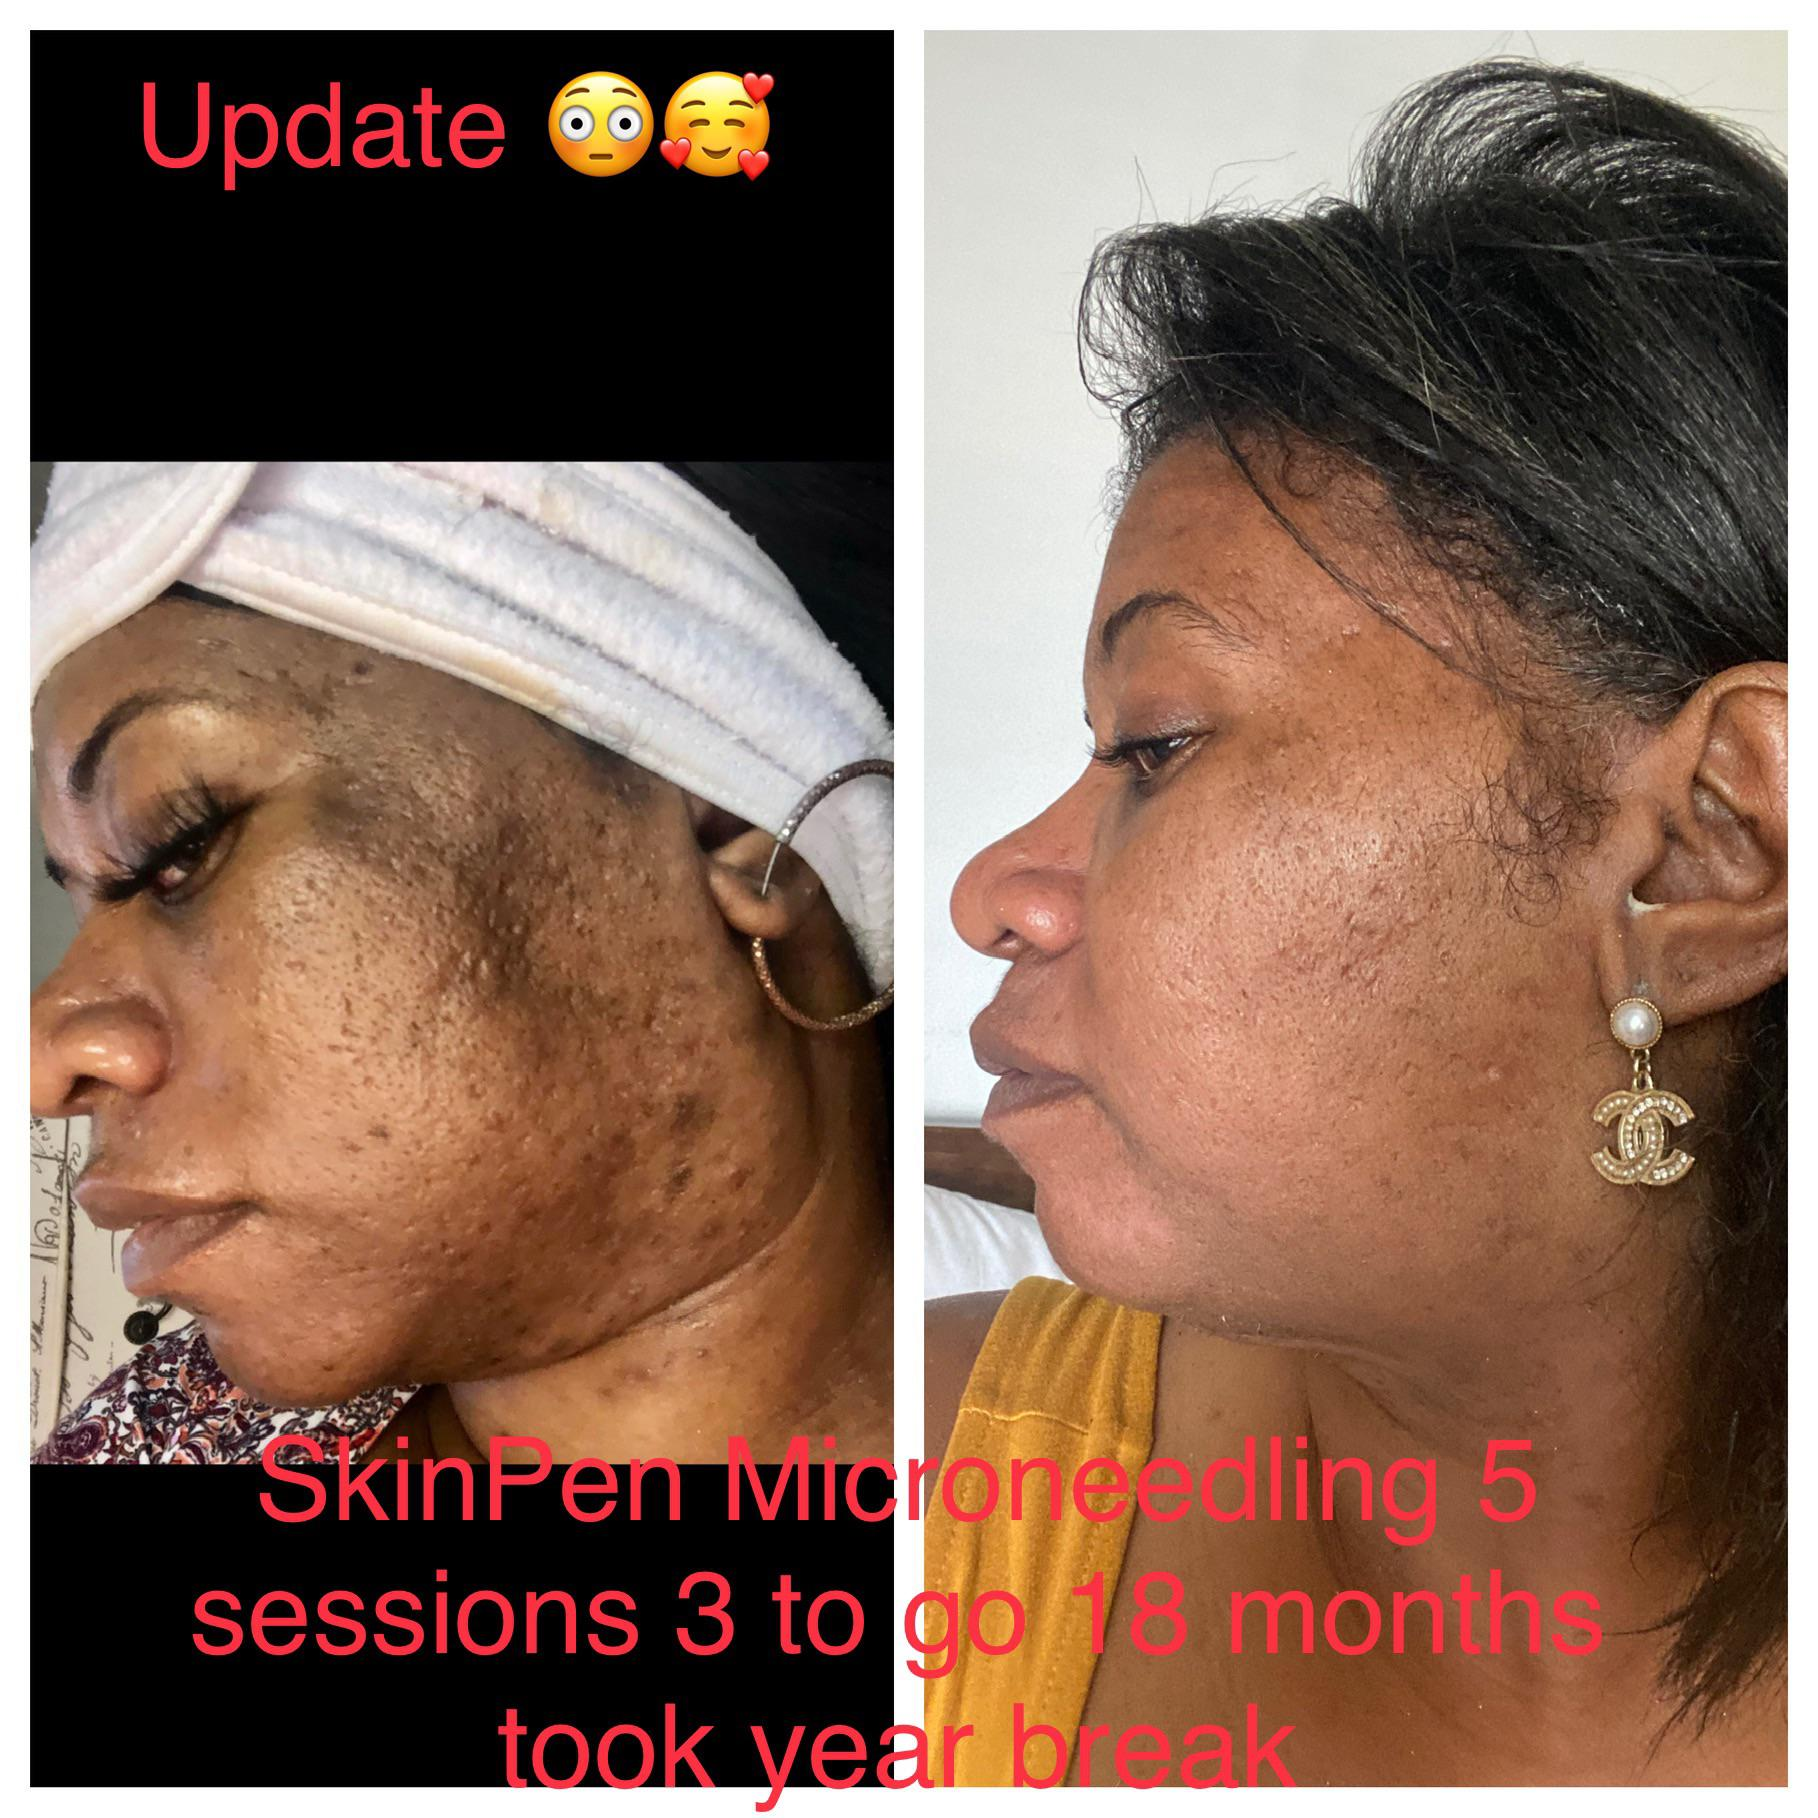 B A My Microneedling Journey Update Photo Hyperpigmentation And Severe Acne Scarring Skincareaddiction